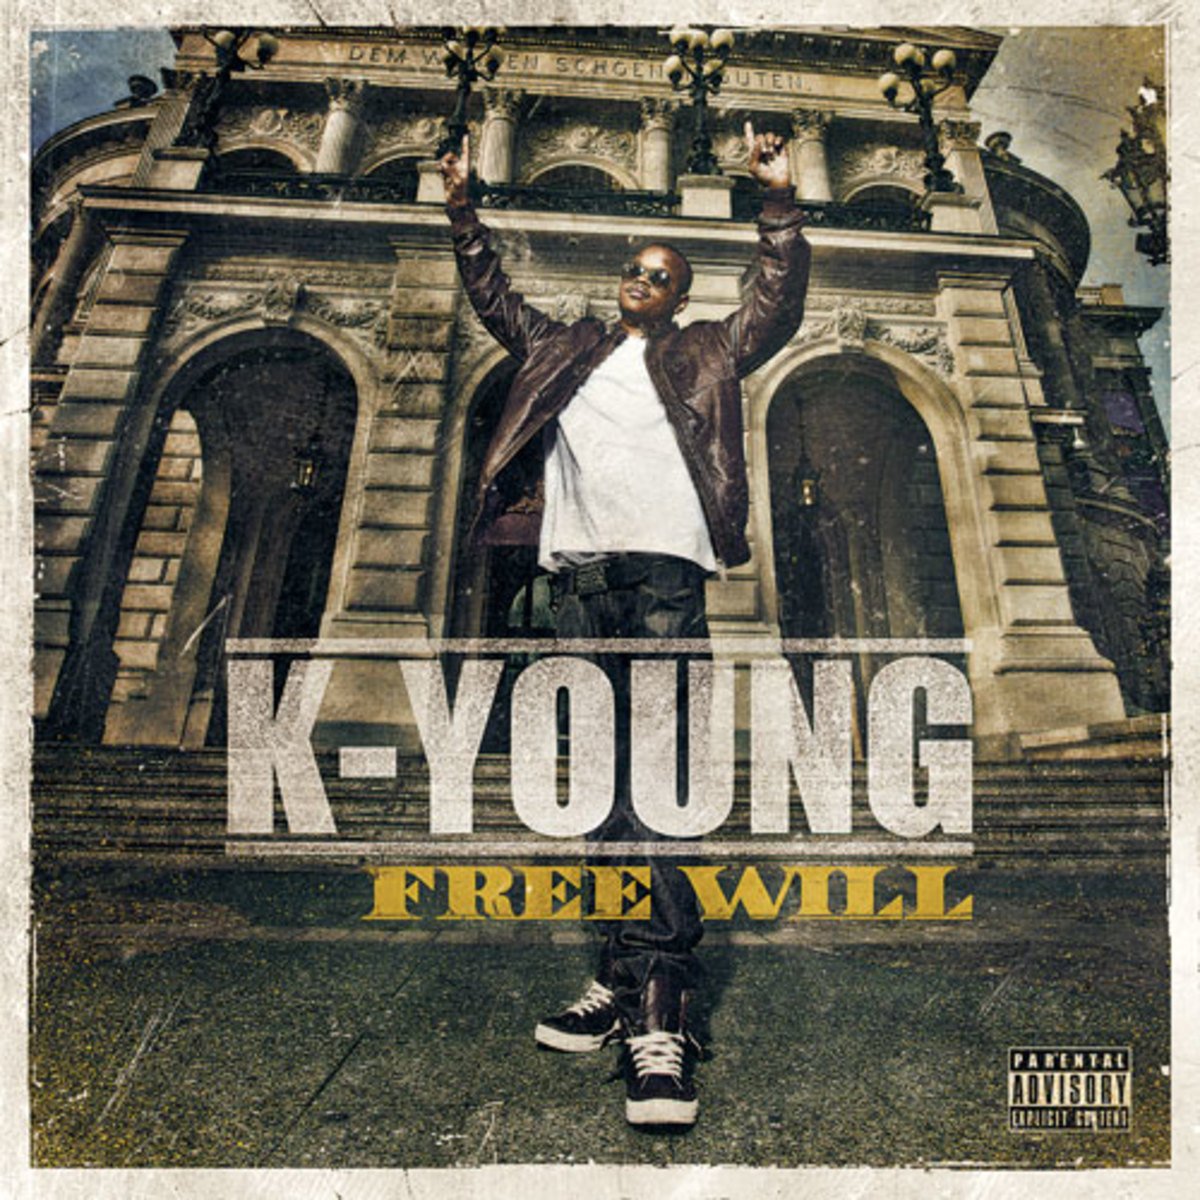 kyoung-freewill.jpg